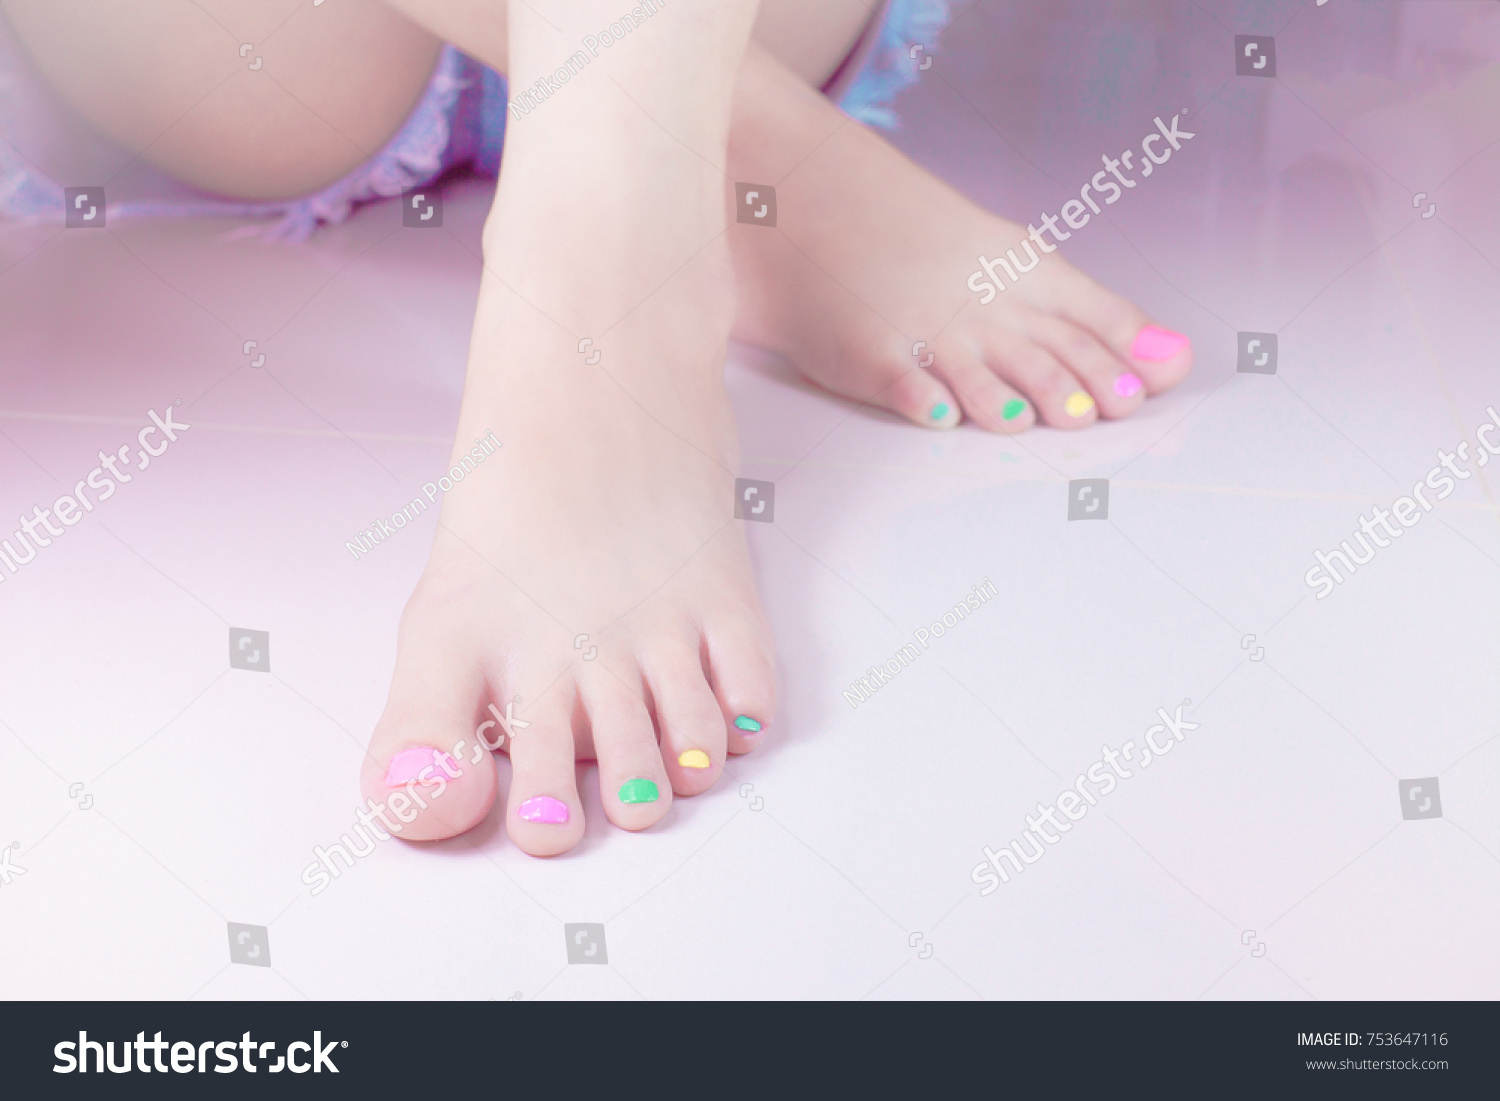 Woman Painting Toe Nails Own Manicure Stock Photo & Image (Royalty ...